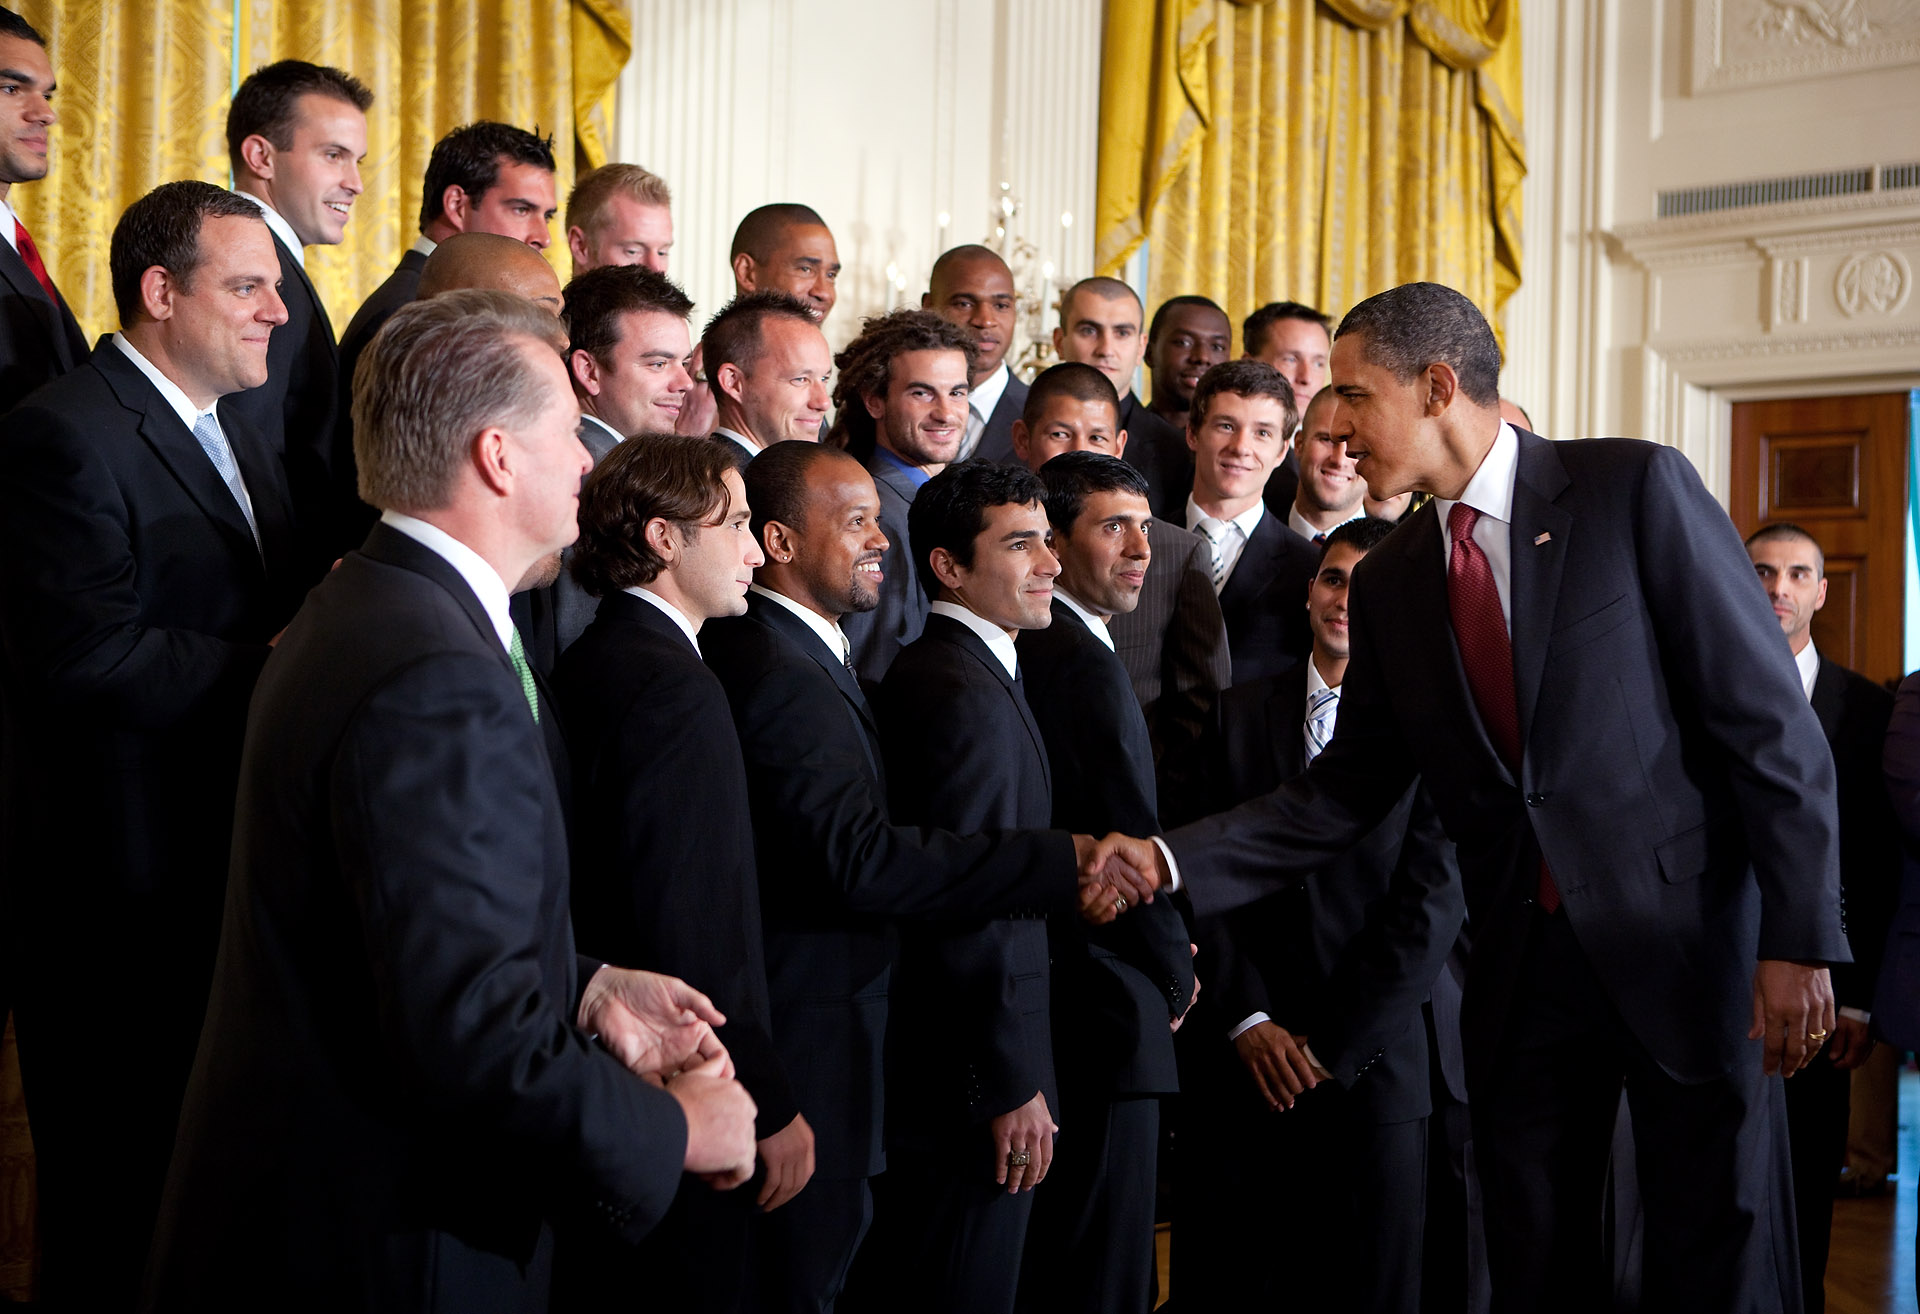 President Obama Greets Real Salt Lake at the White House